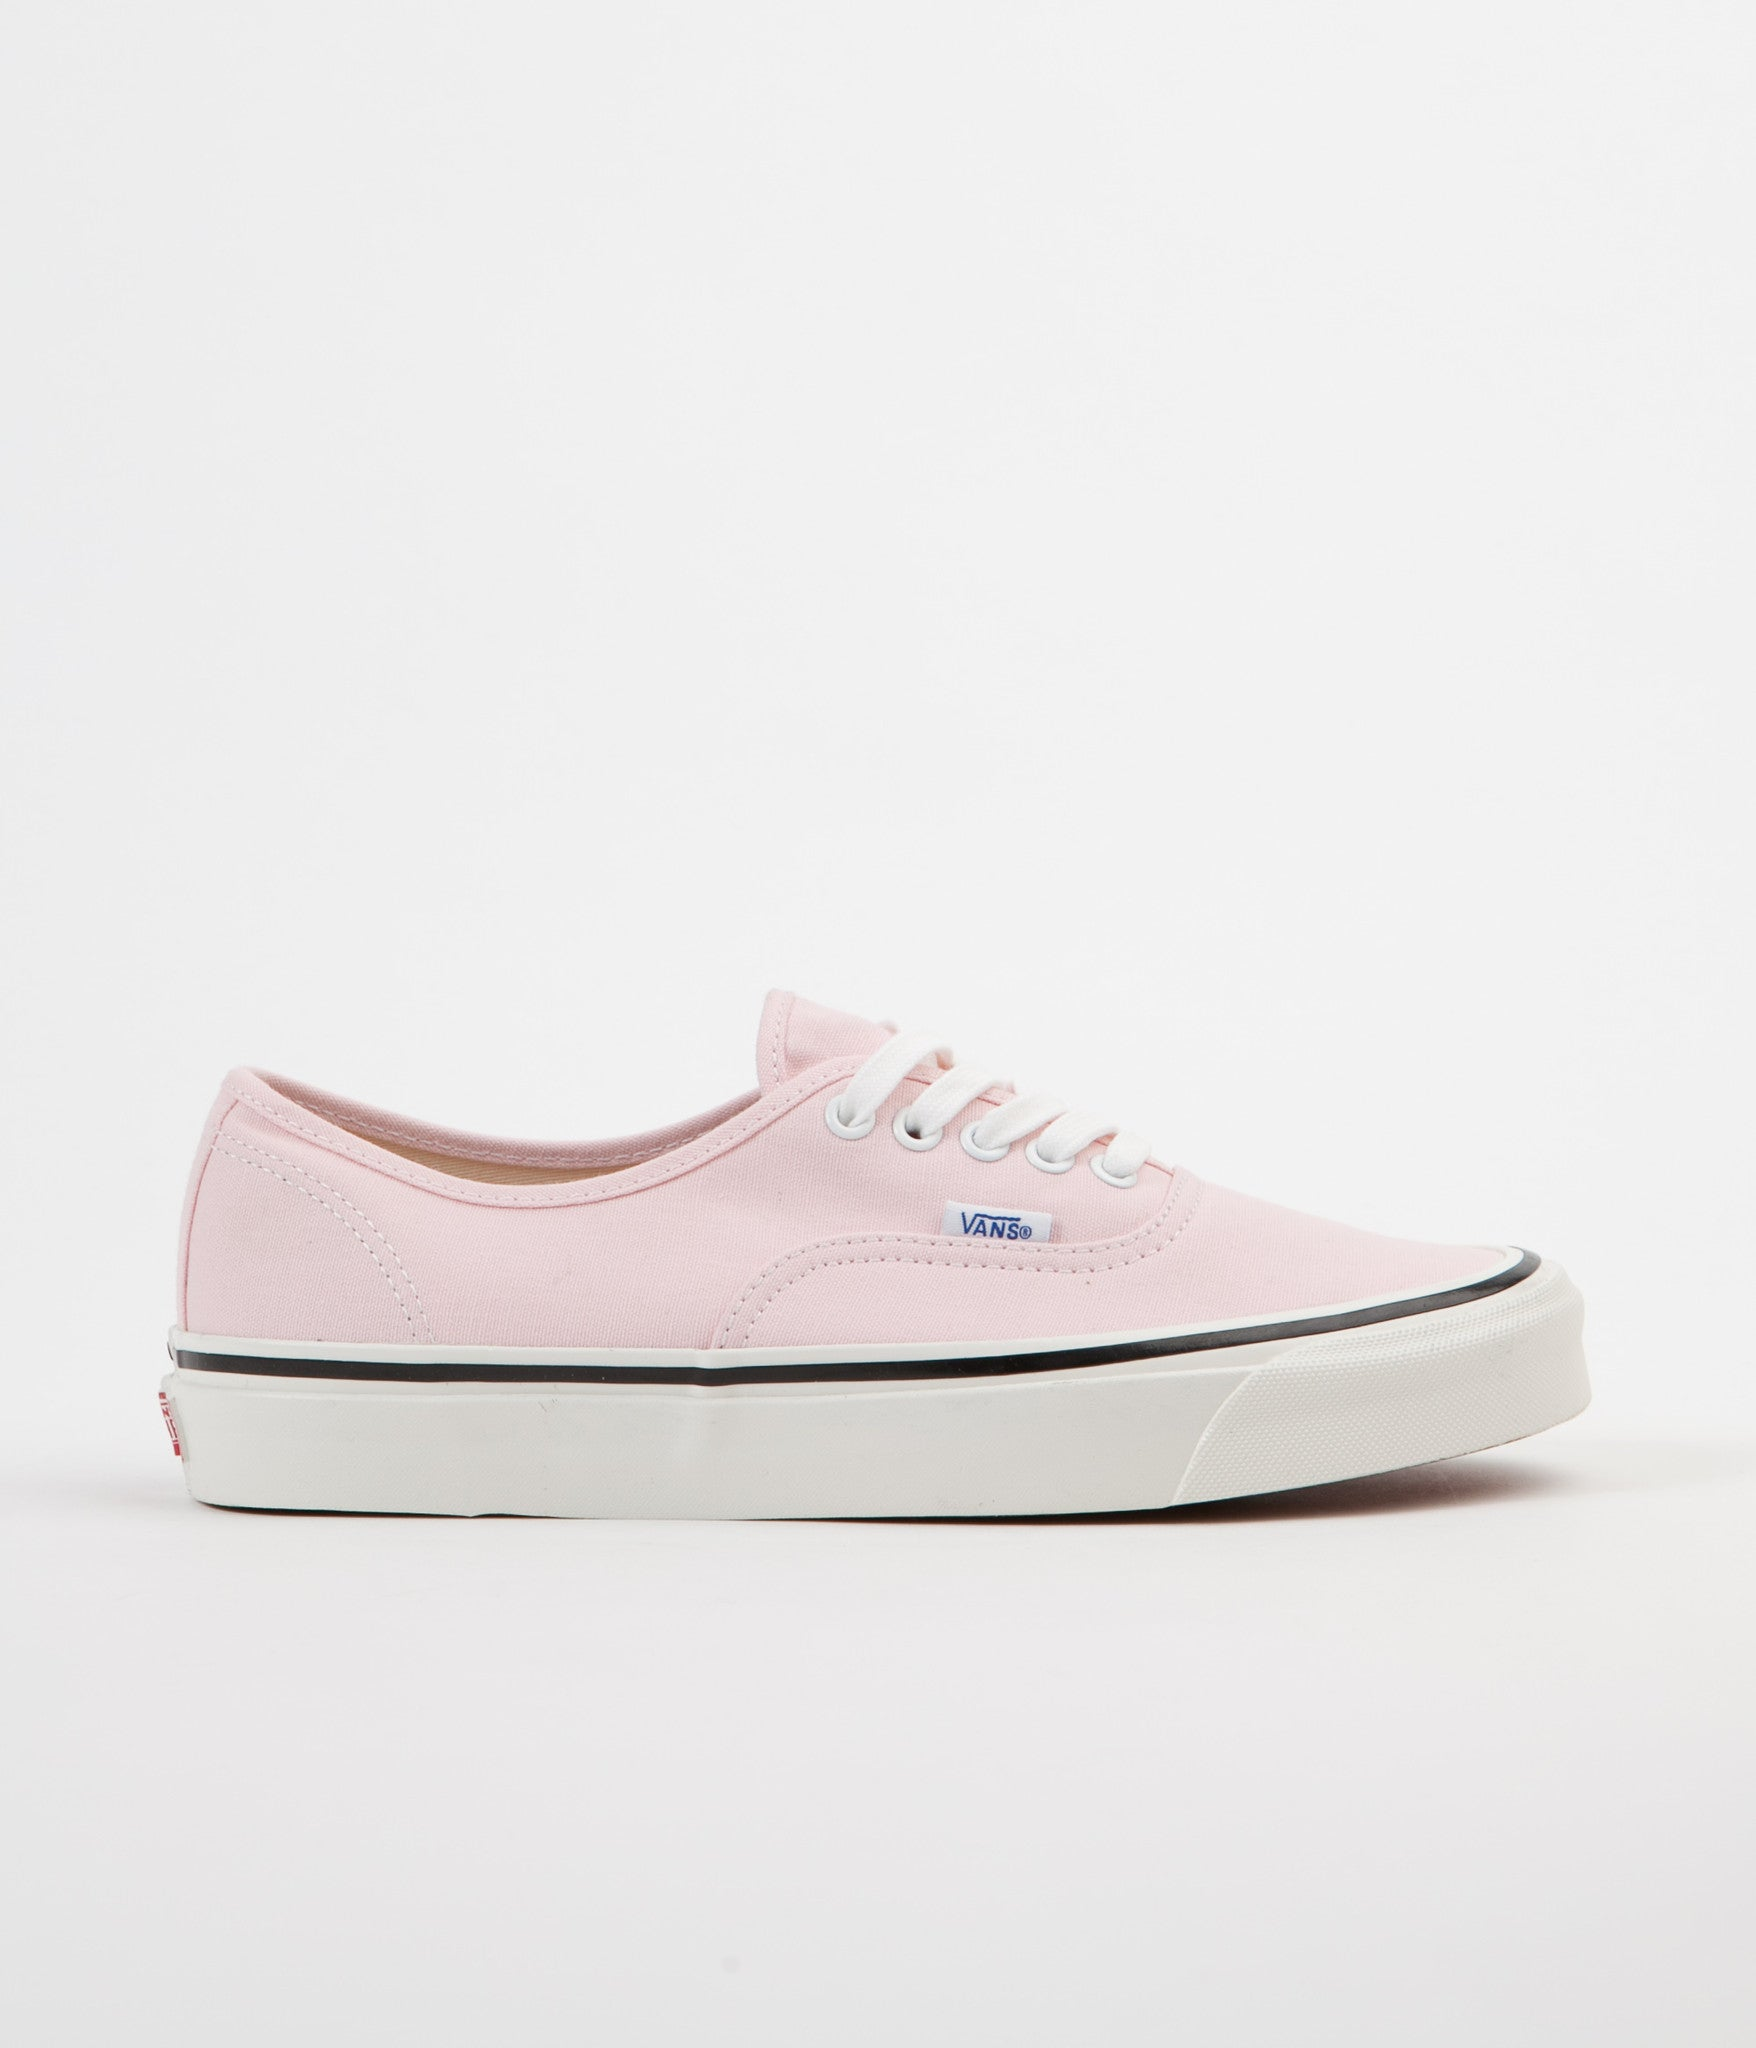 Vans Authentic 44 DX Anaheim Factory Shoes - Pink  dc7afc040